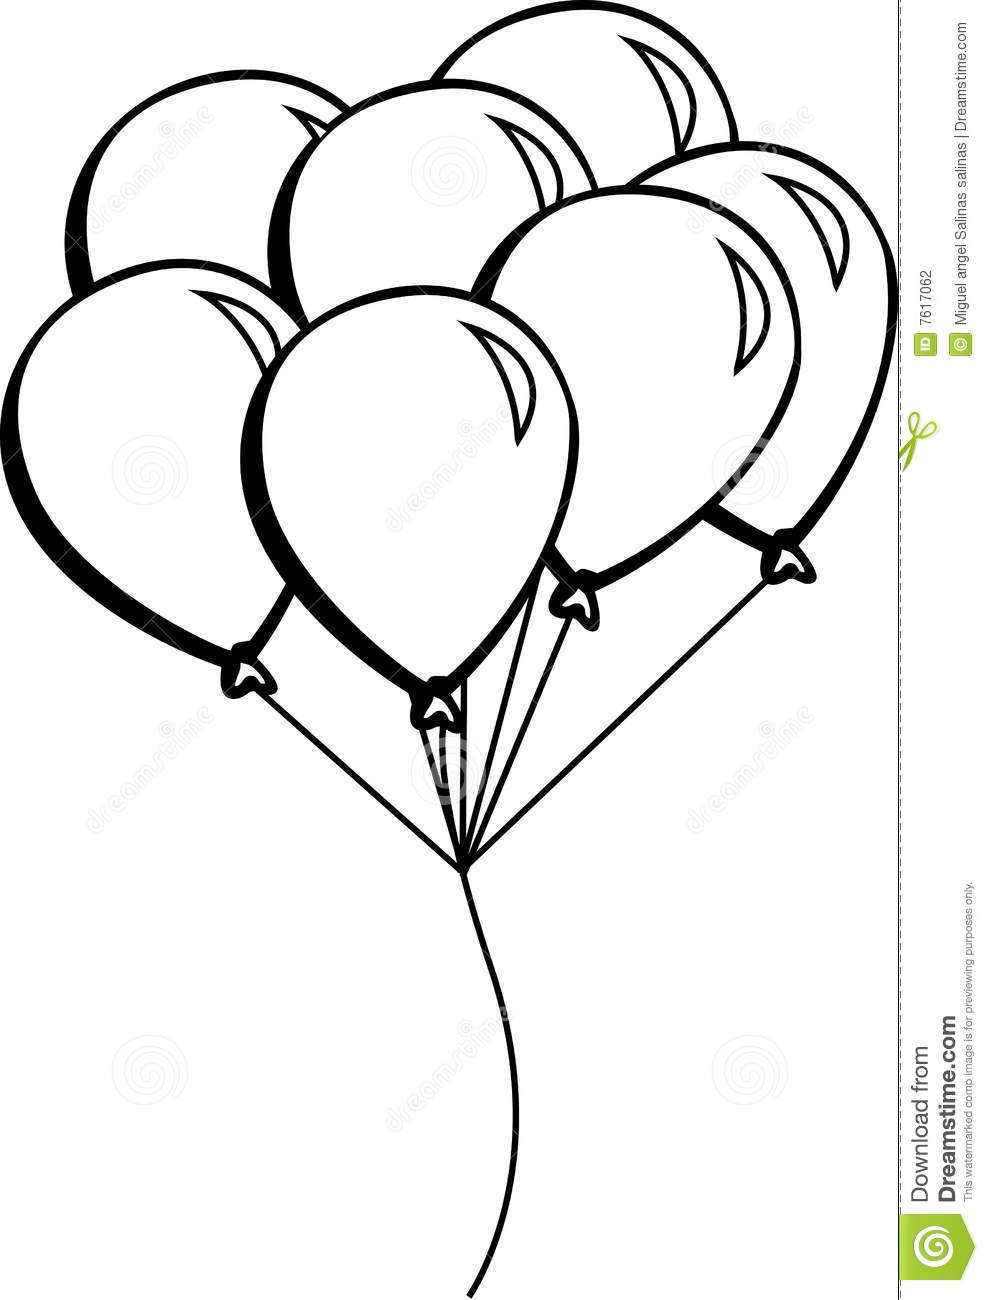 birthday balloons drawing ; balloons-vector-illustration-7617062